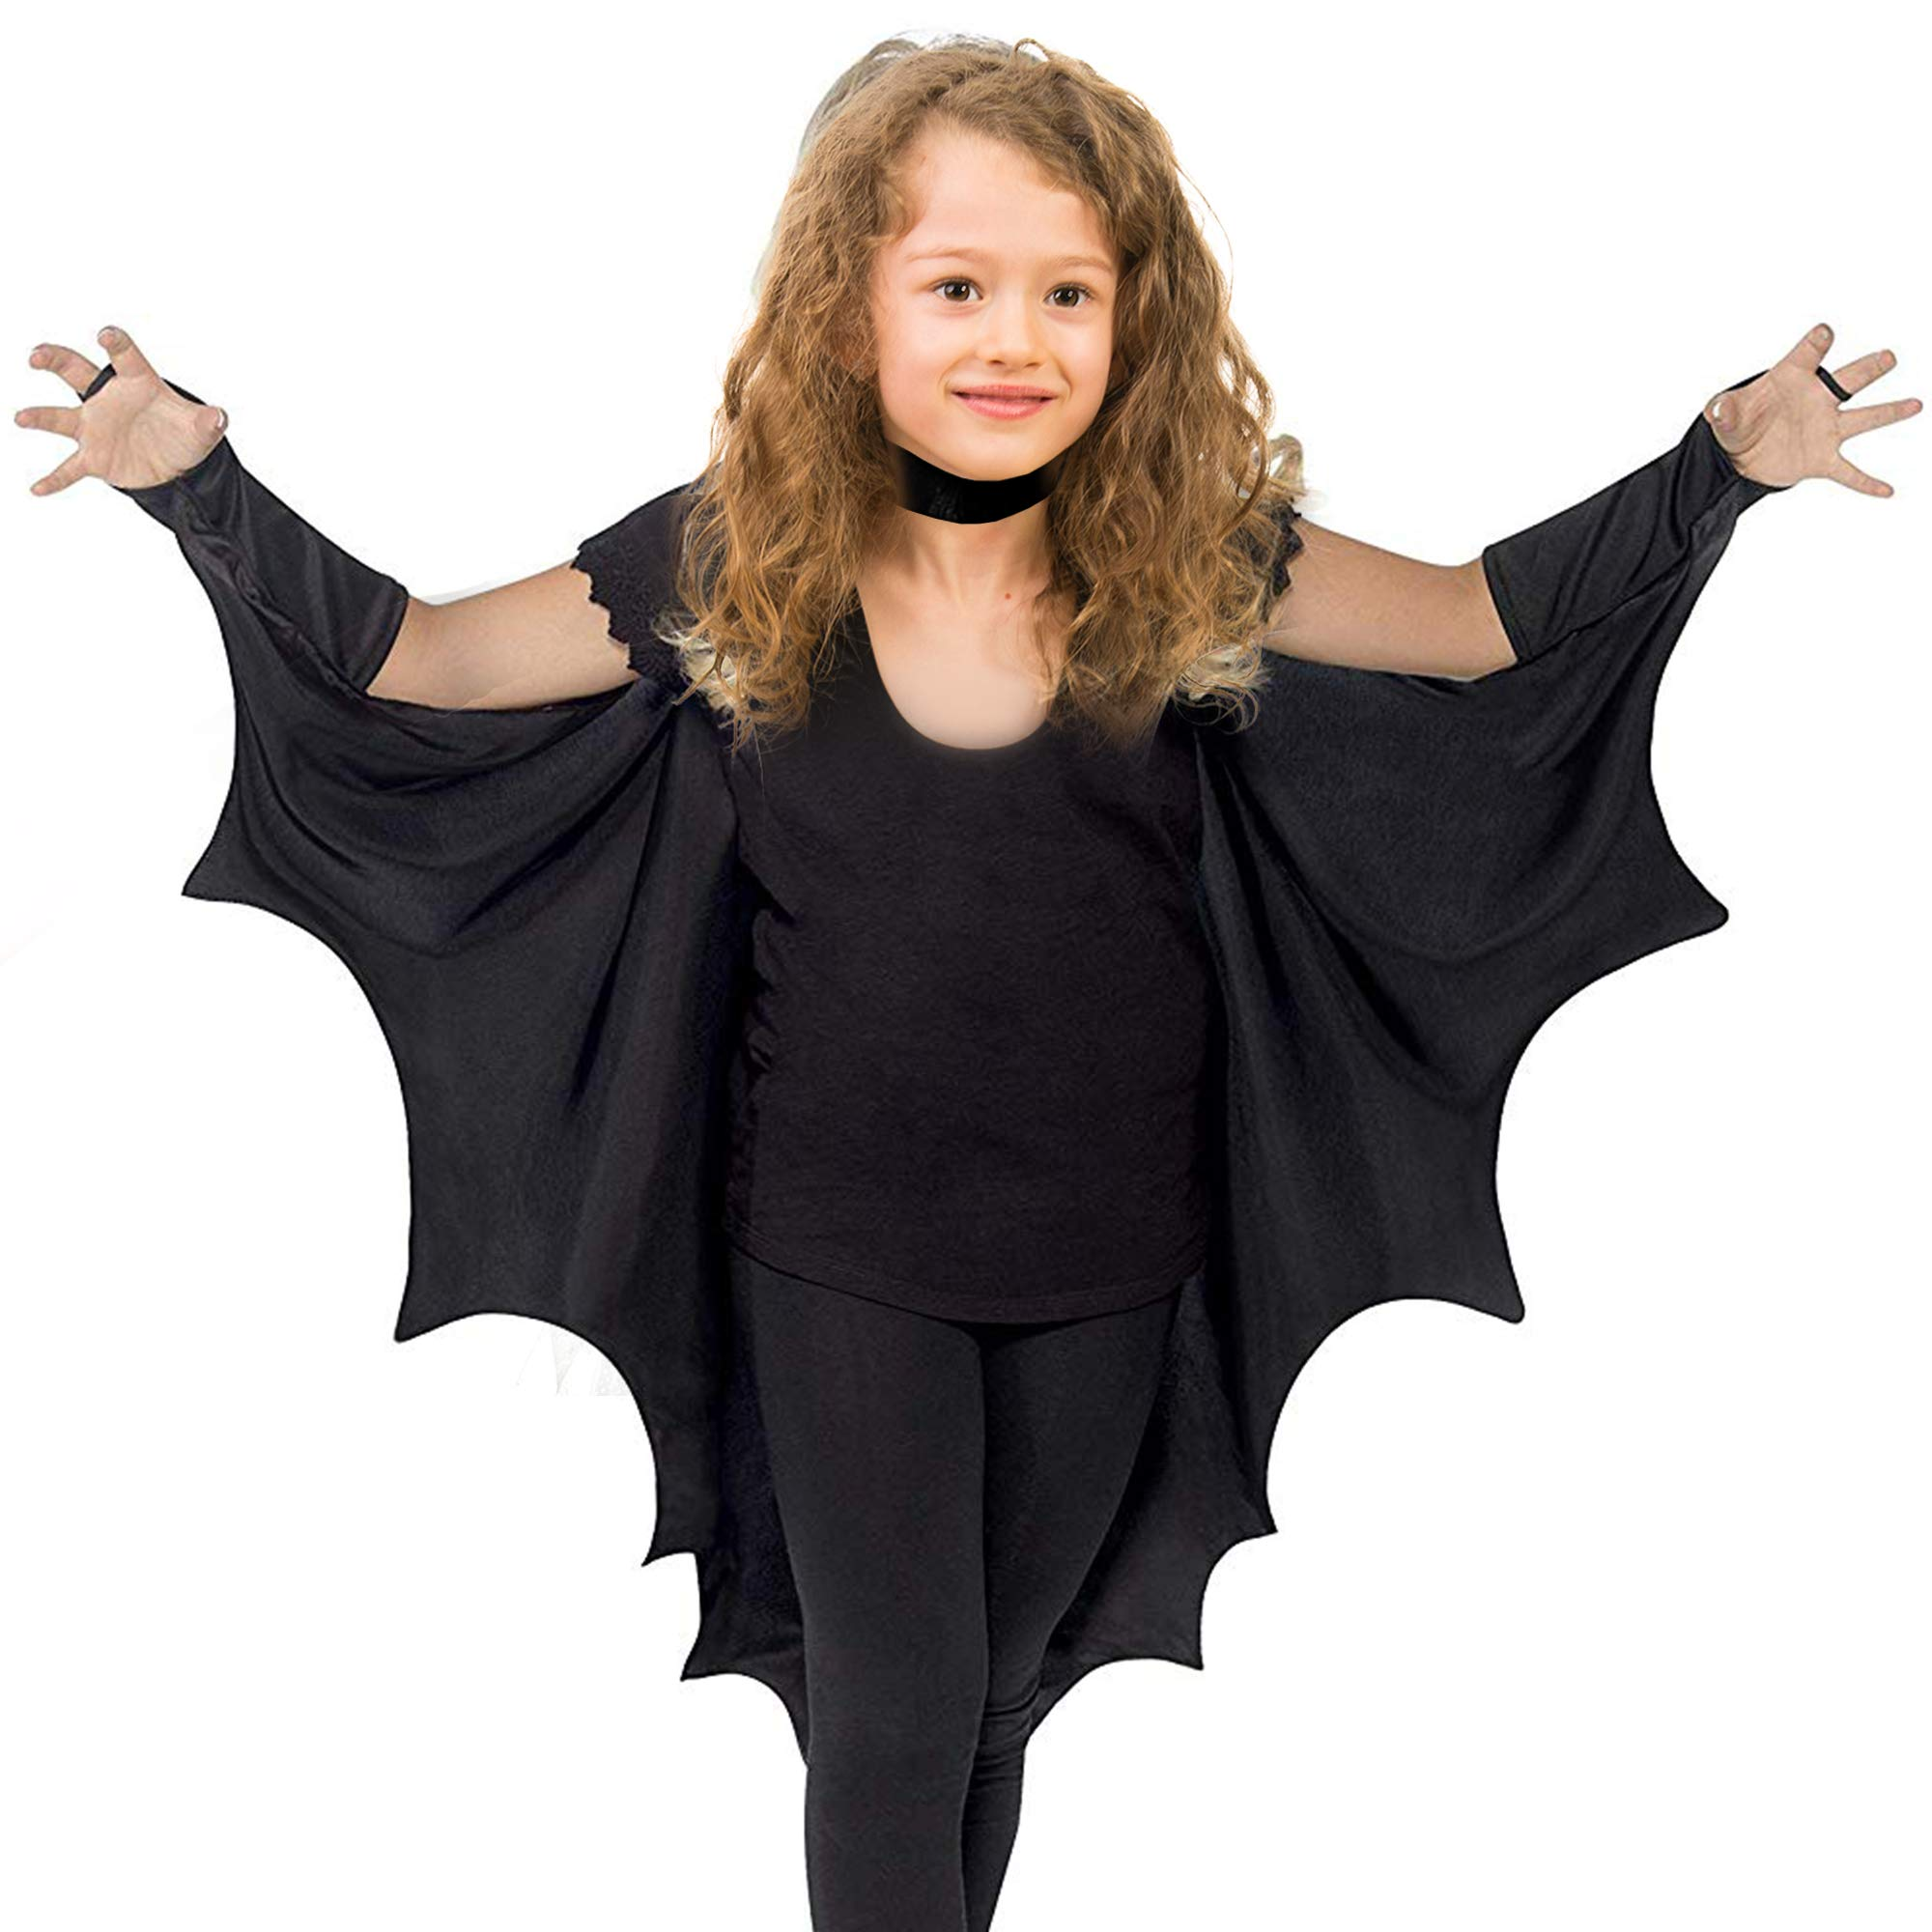 Skeleteen Bat Wings Costume Accessory - Black Wing Set Dress Up Accessories for Dragon, Vampire or Bat Costumes by Skeleteen